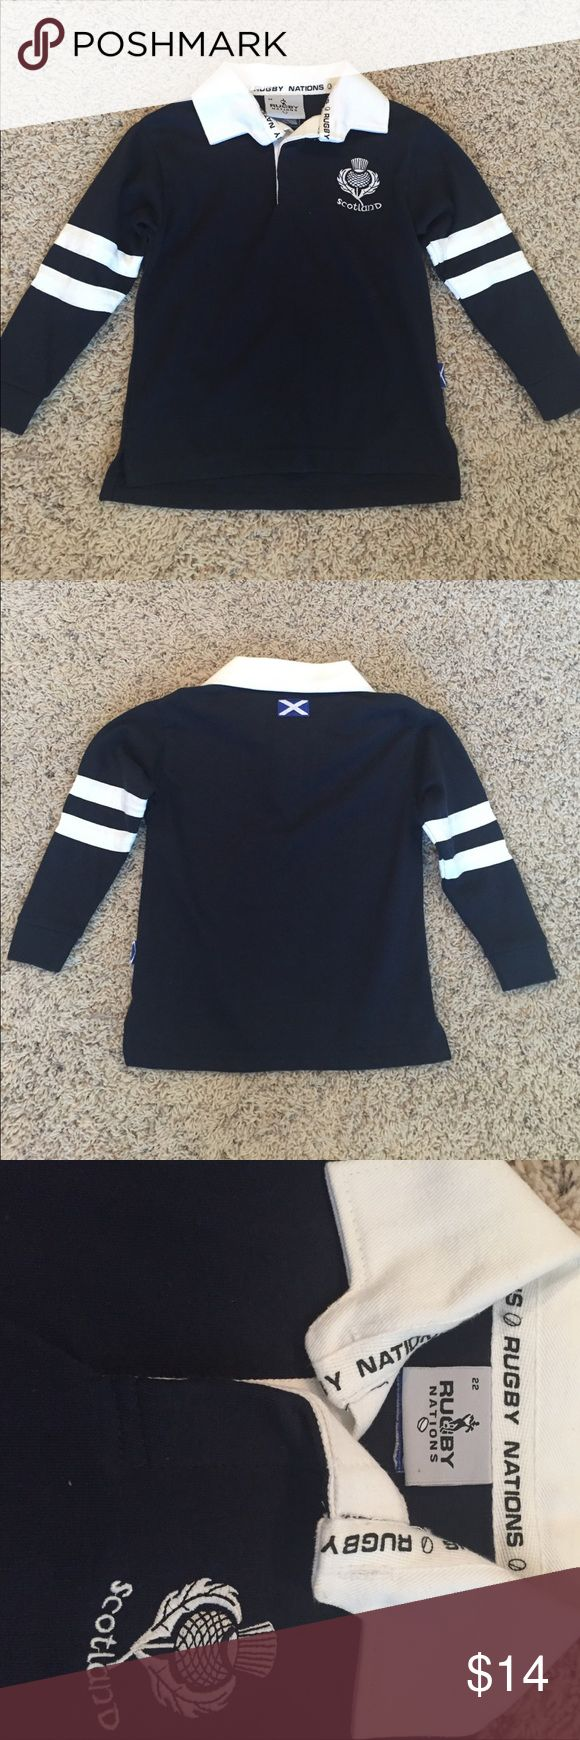 NWOT official Scotland rugby shirt. Size 22 NWOT boys official Scotland Rugby long sleeve shirt. Never worn and perfect condition!  Size 22, navy blue!  Perfect for the sports fans! Shirts & Tops Polos